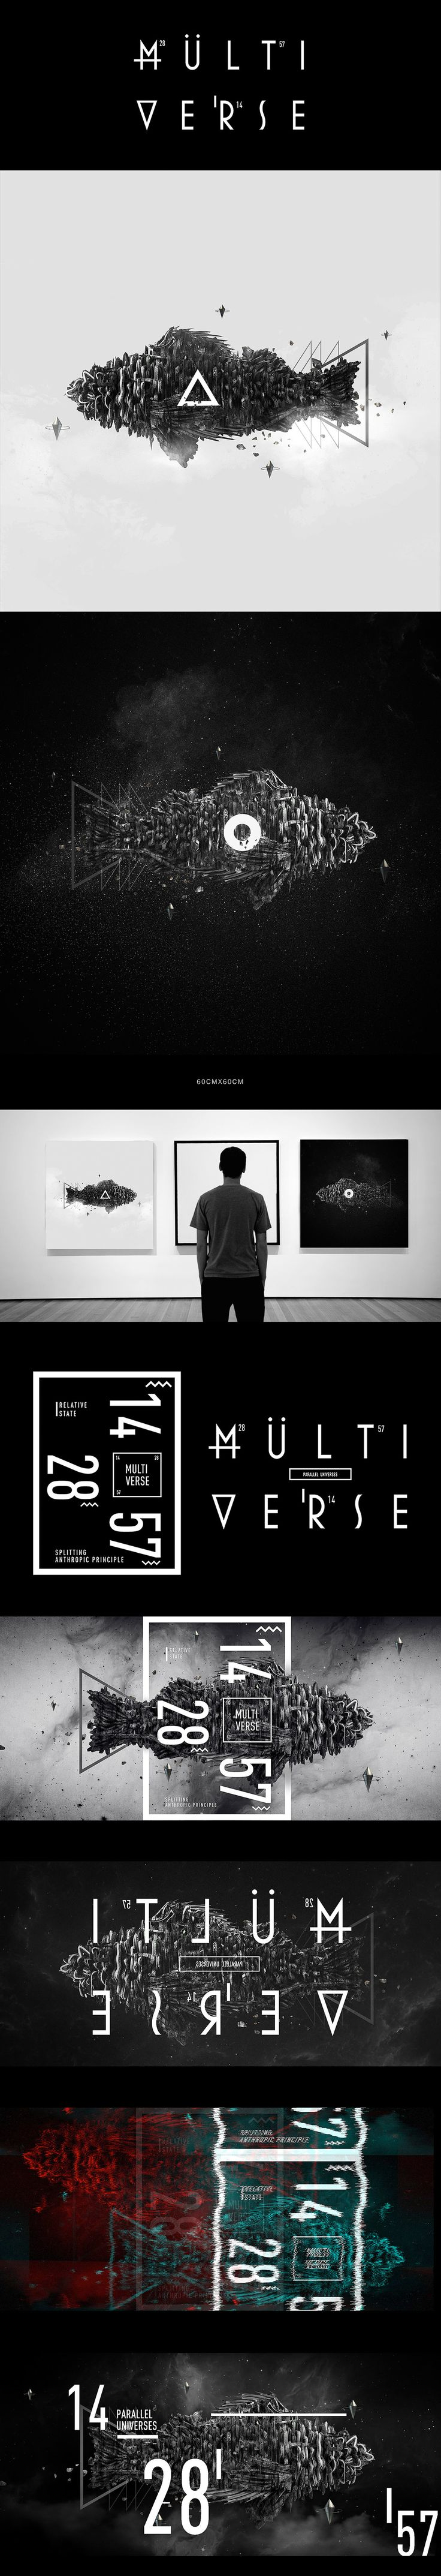 Floating in the multiverse on Behance